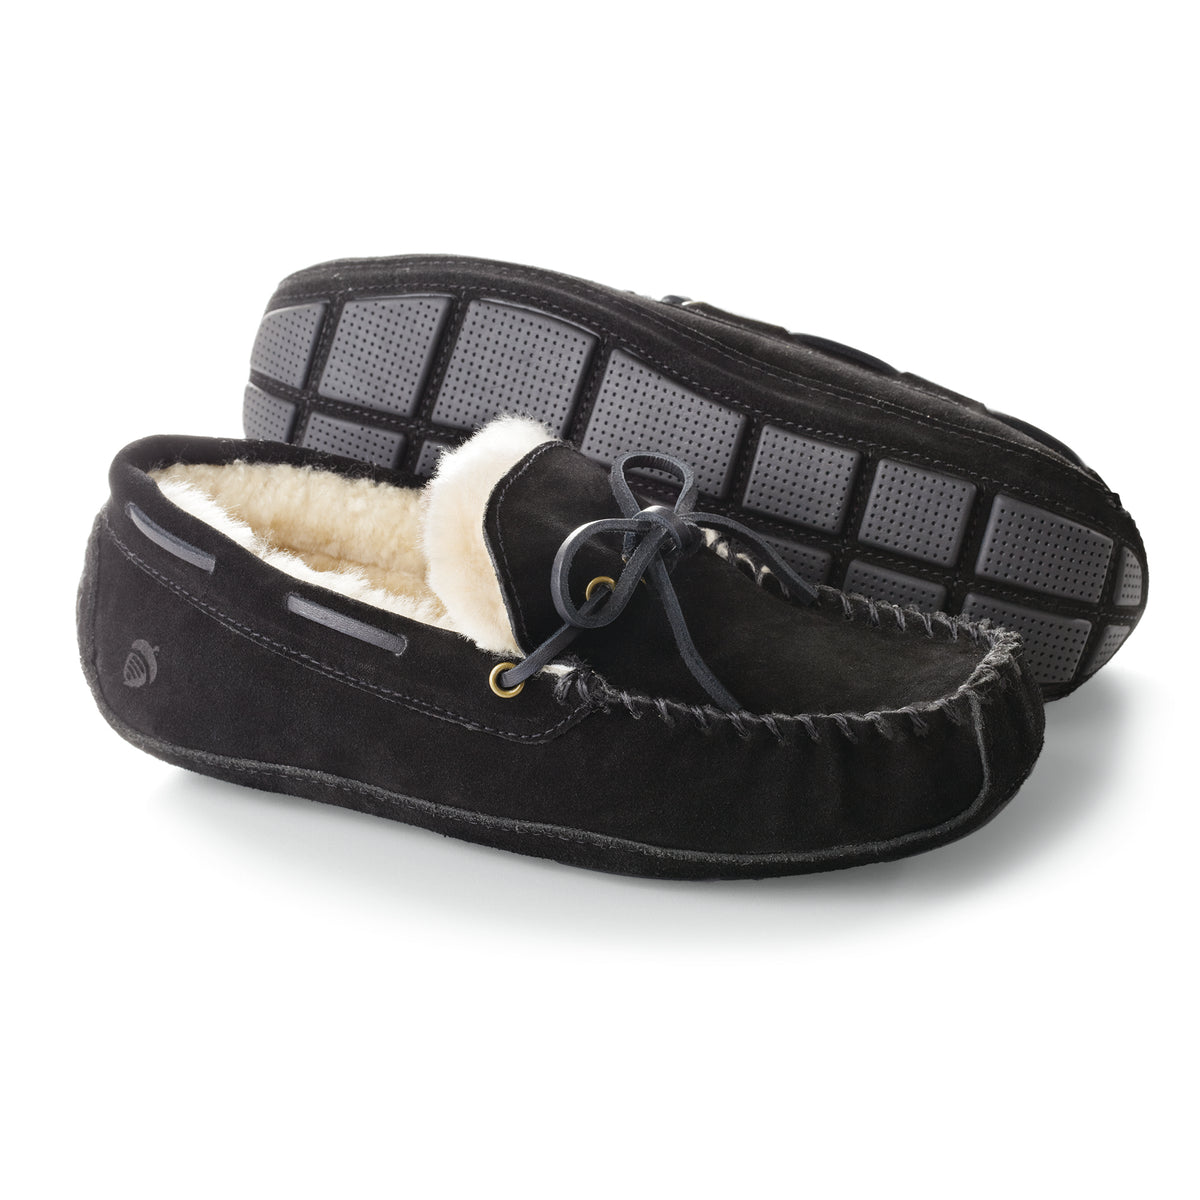 Acorn Men's Sheepskin Moxie Moc Slippers